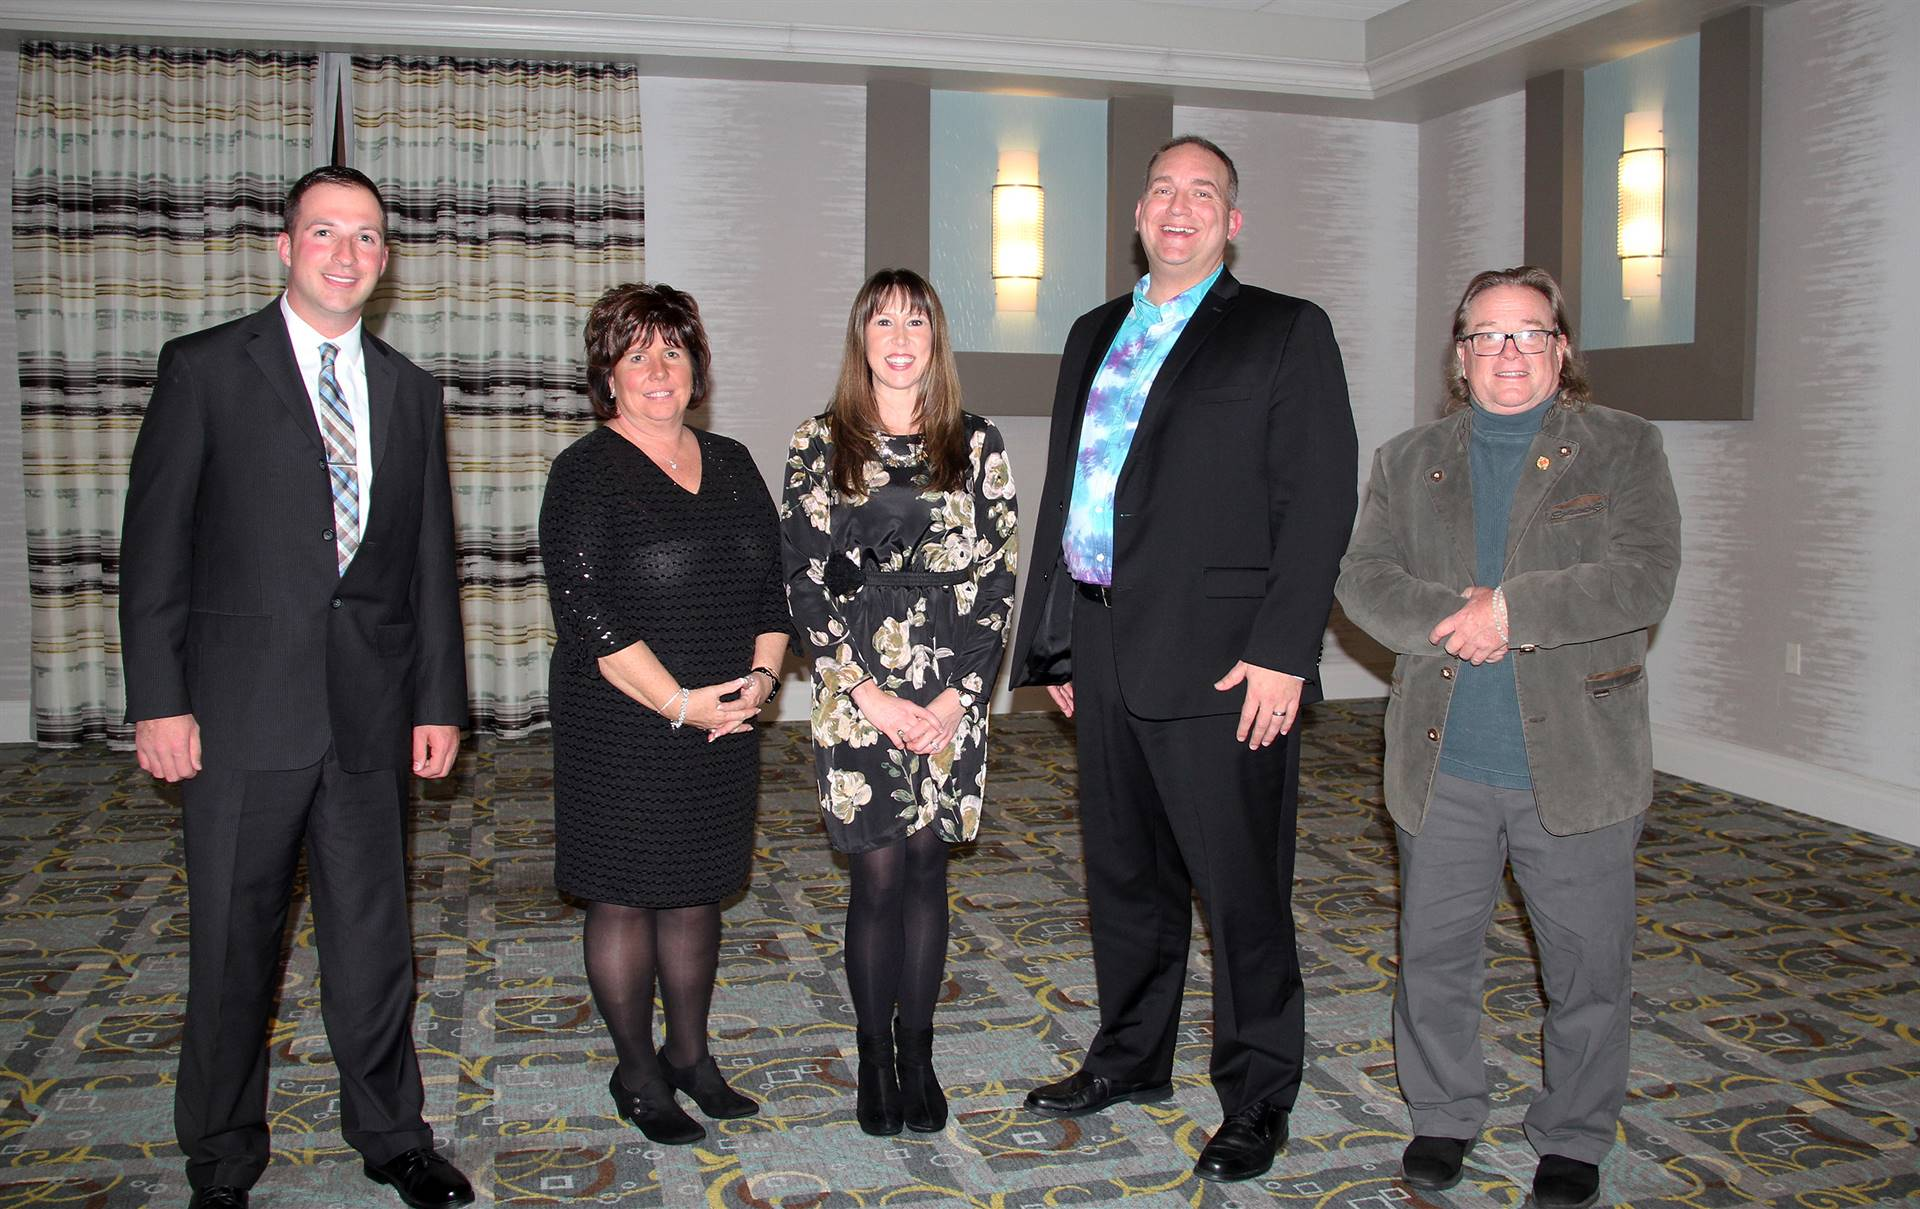 honorees at recognition dinner